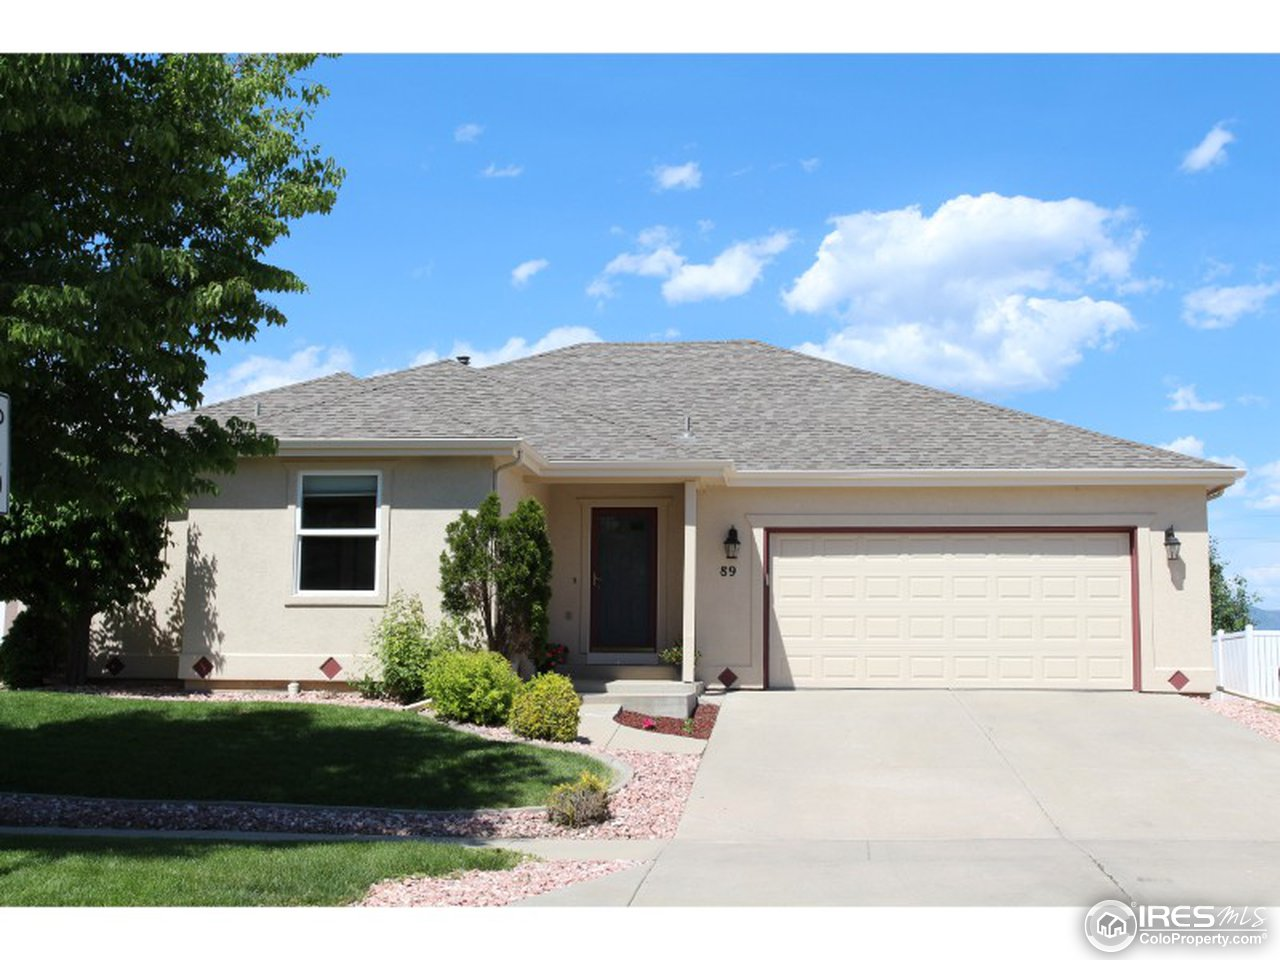 89 Sioux Dr Loveland Home Listings - Team Cook Real Estate